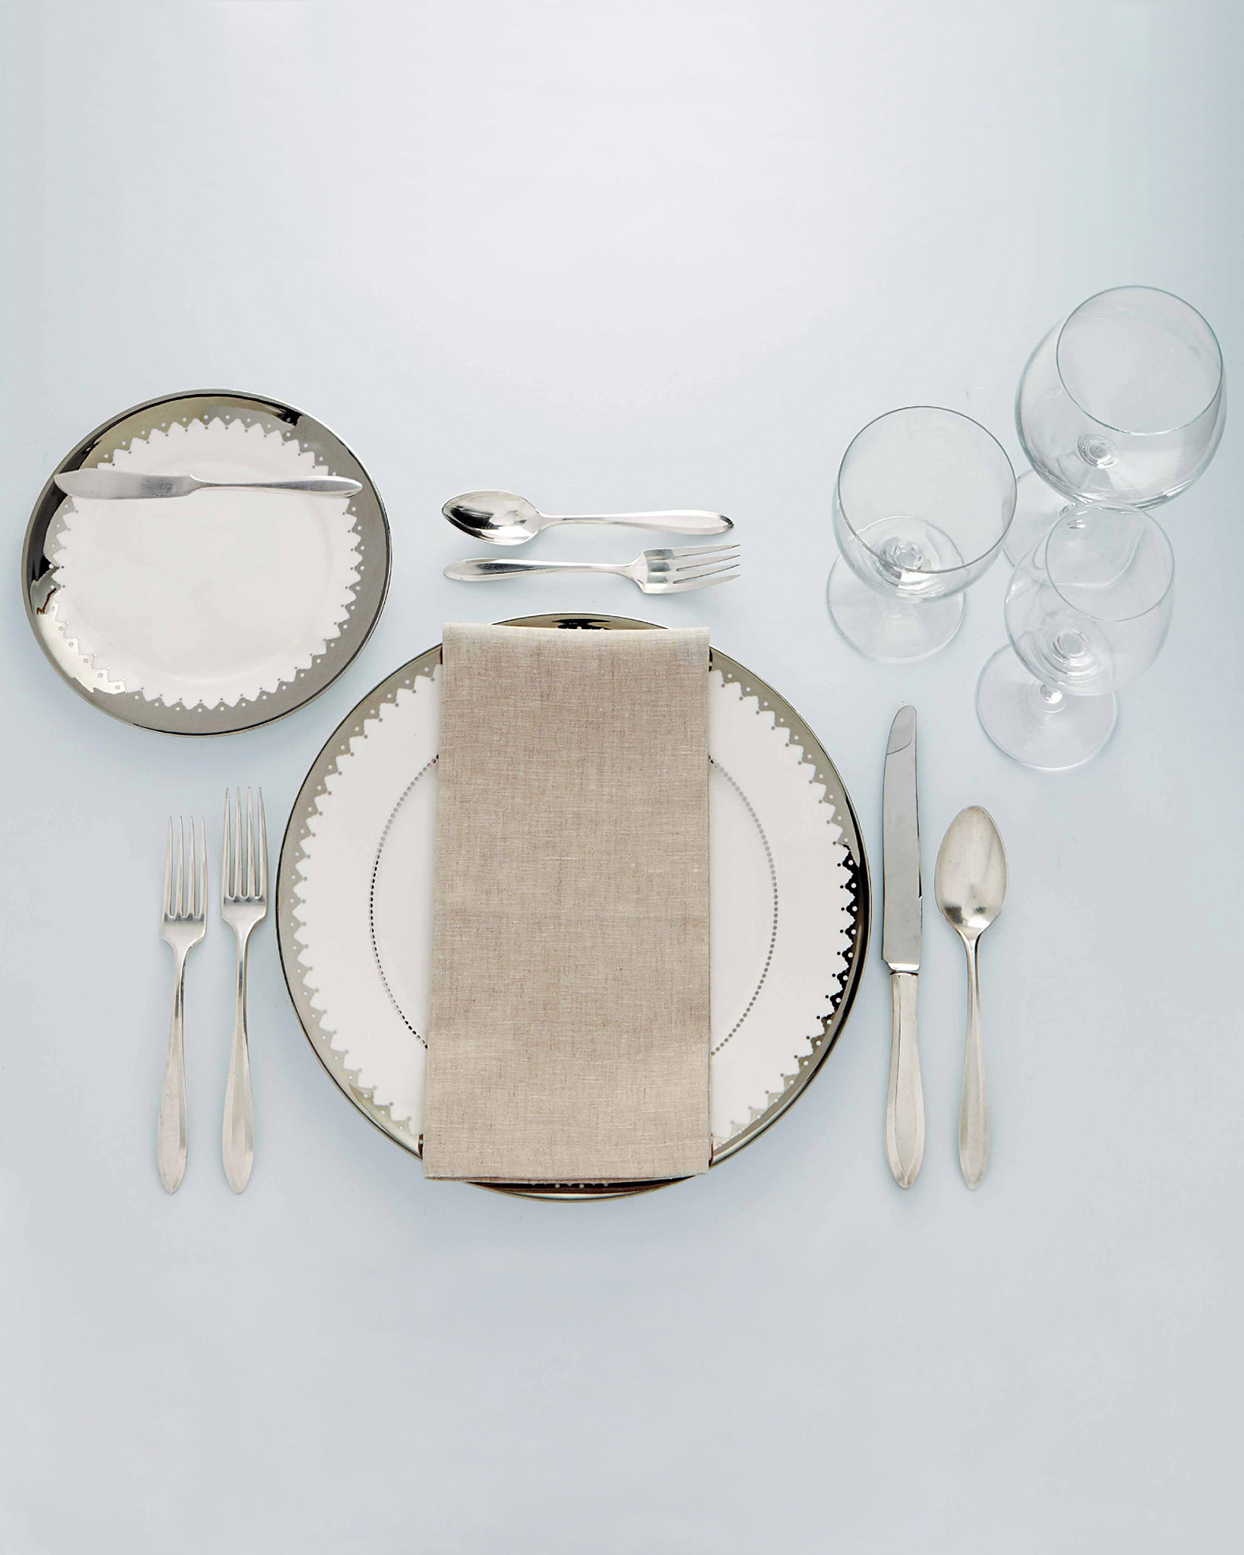 silver and white place setting on blue table